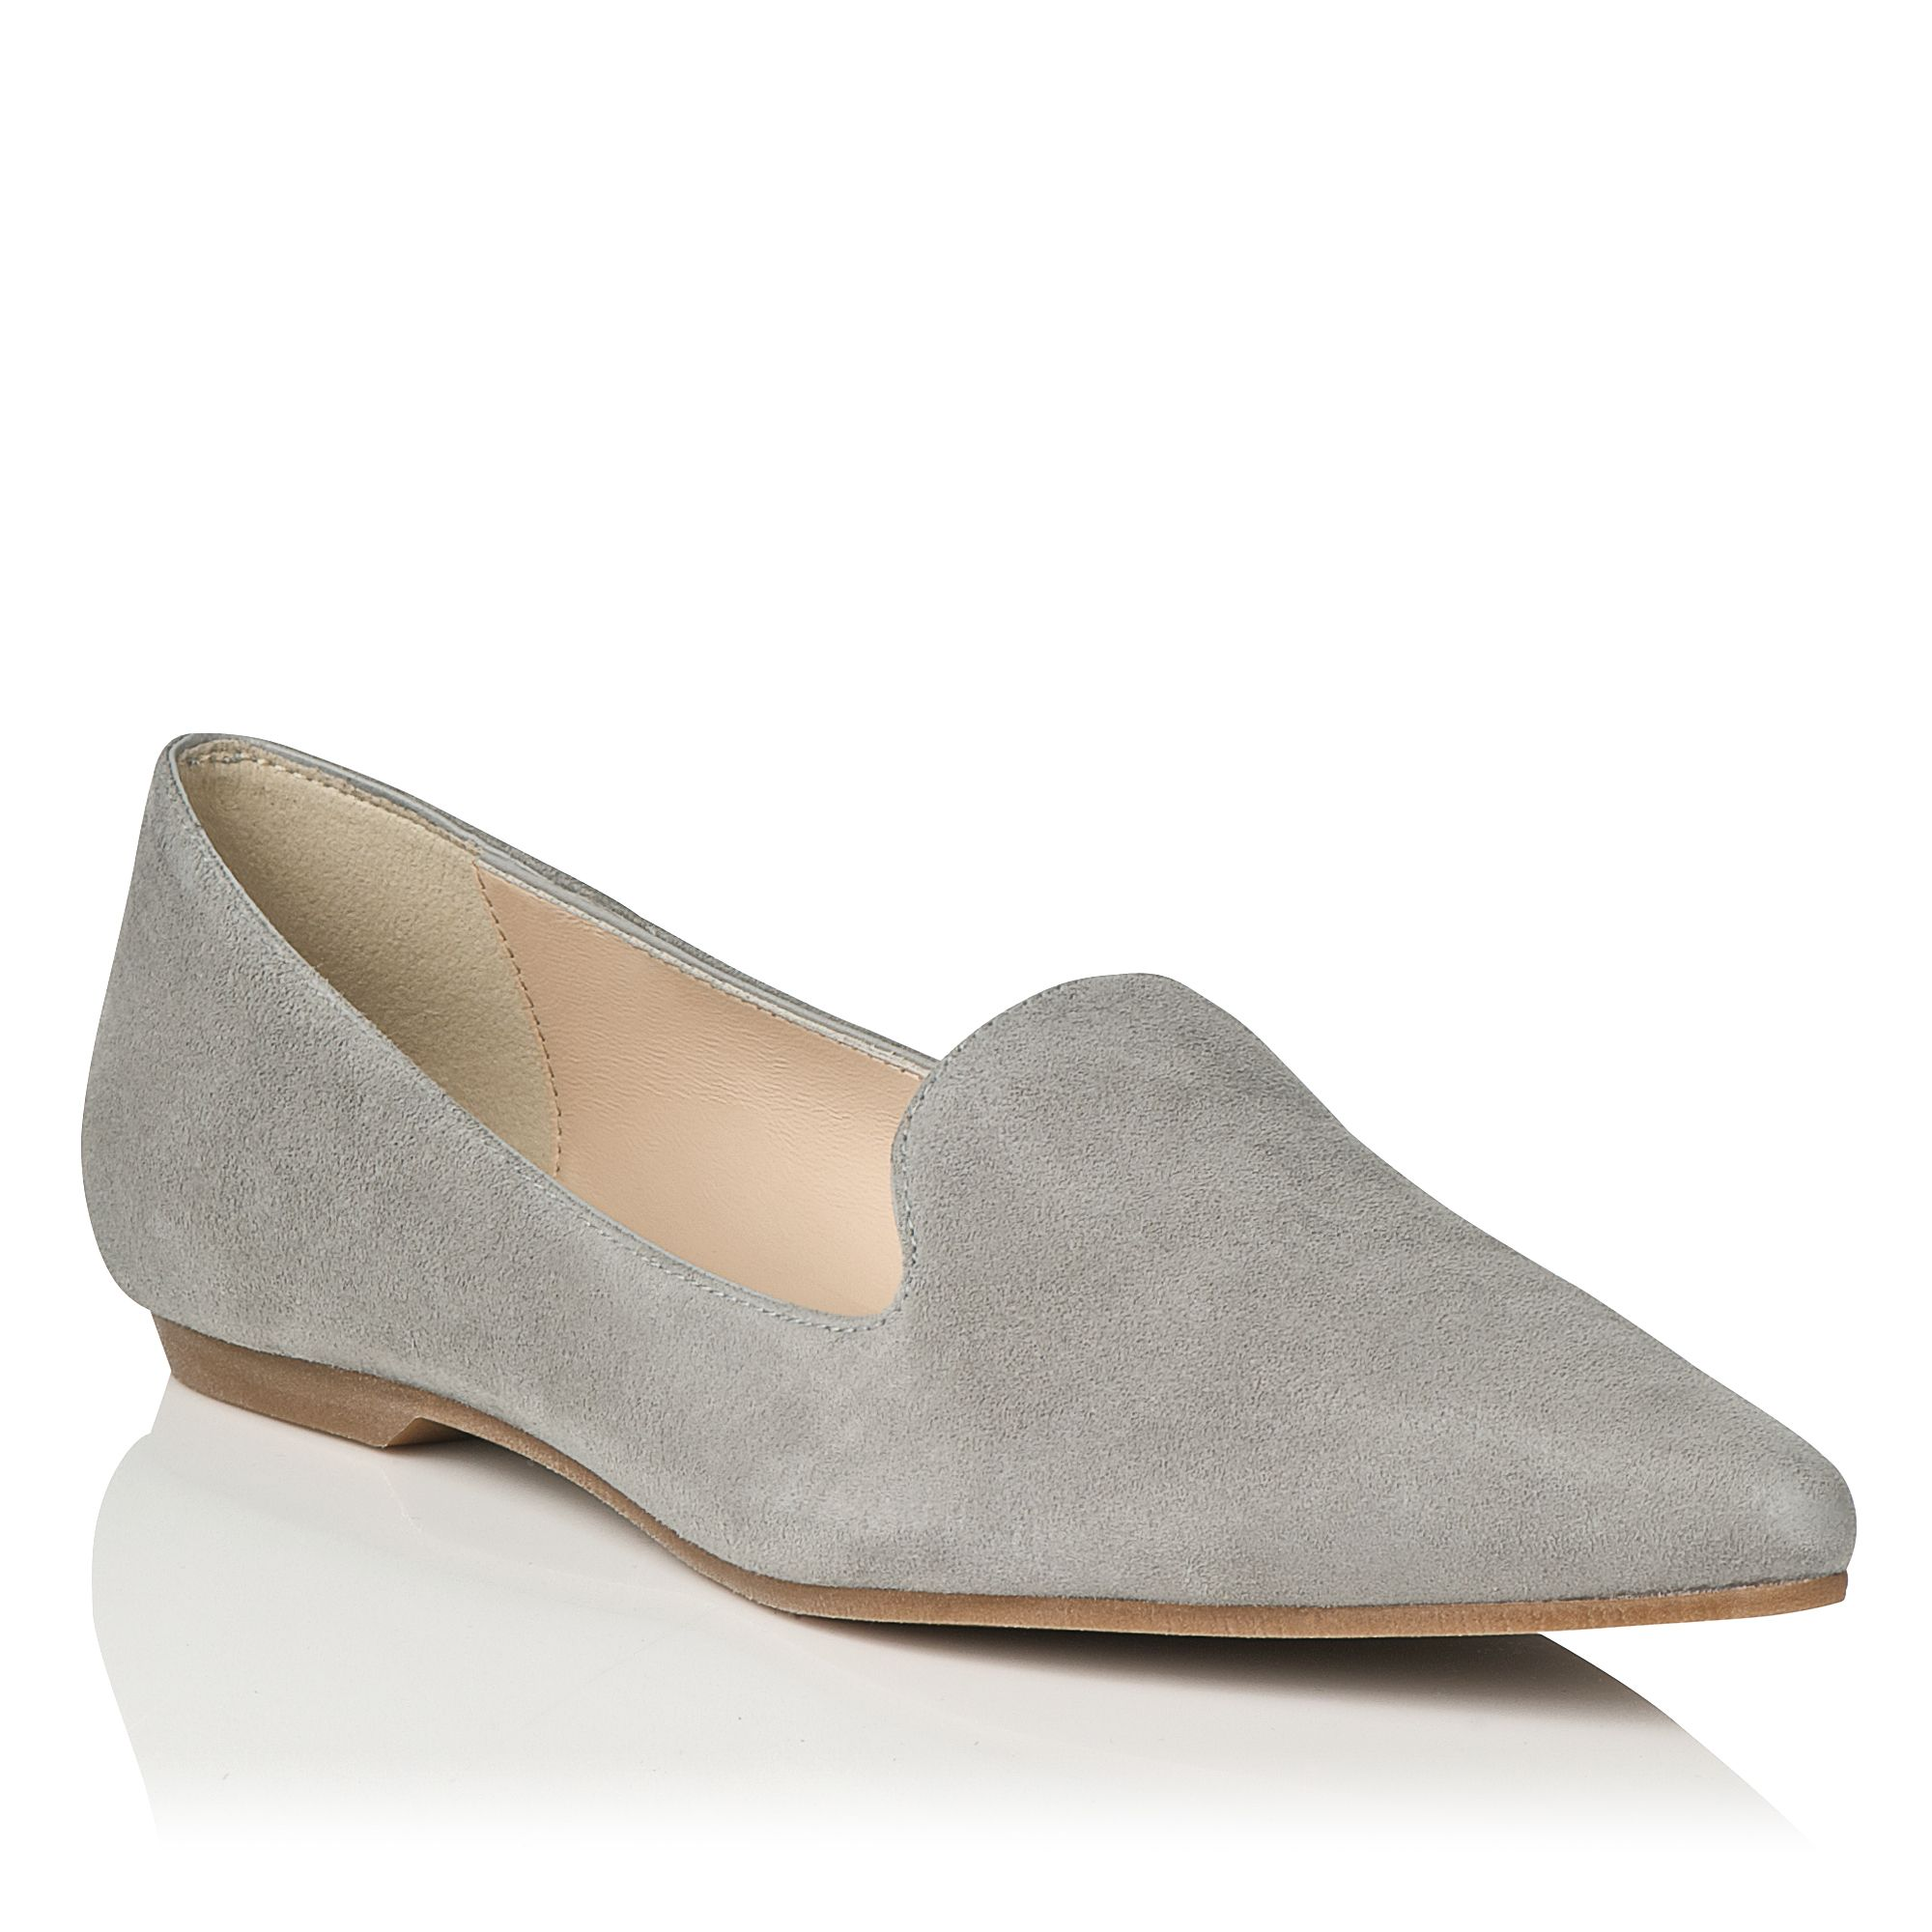 Tilly suede pointed toe slipper ballerinas